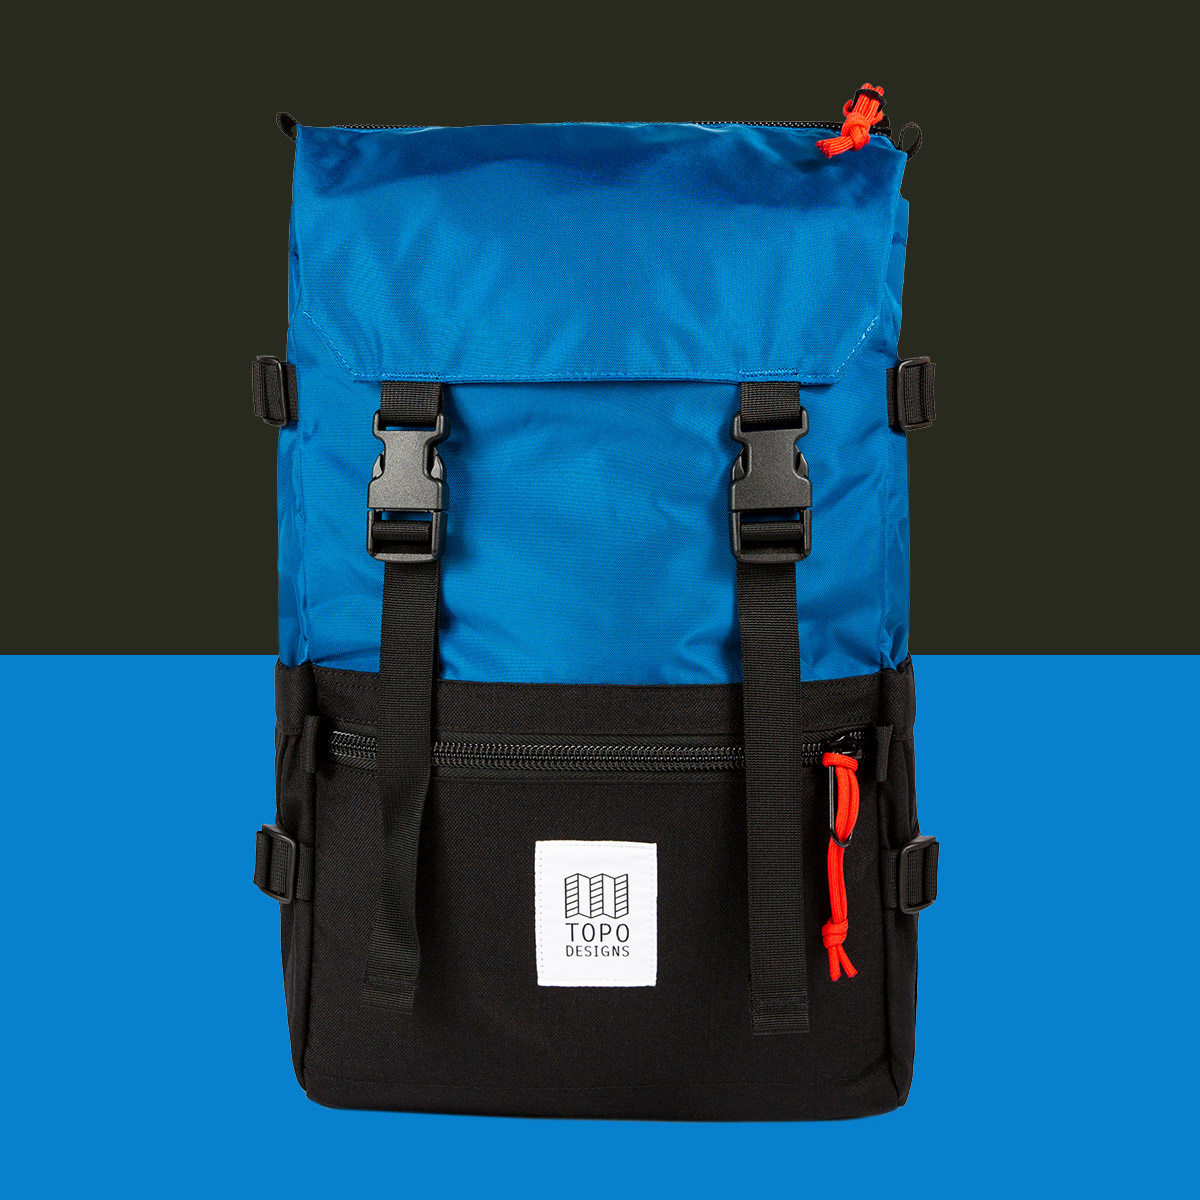 Topo Designs Rover Pack Classic Blue/Black, durable, lightweight and water-resistant pack for daily use